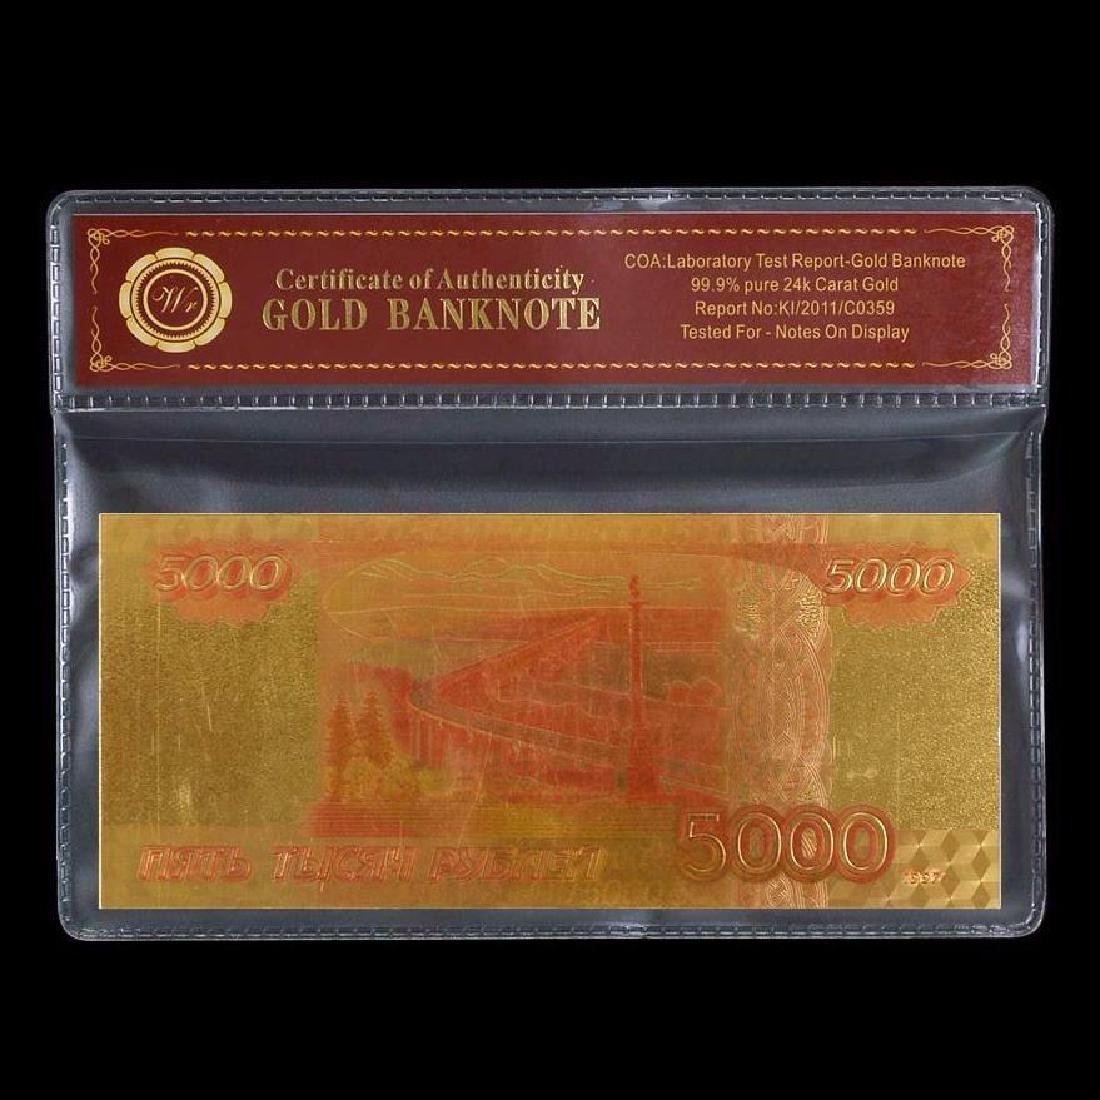 Russia 5,000 Rubles 24K Gold Clad Banknote - 2